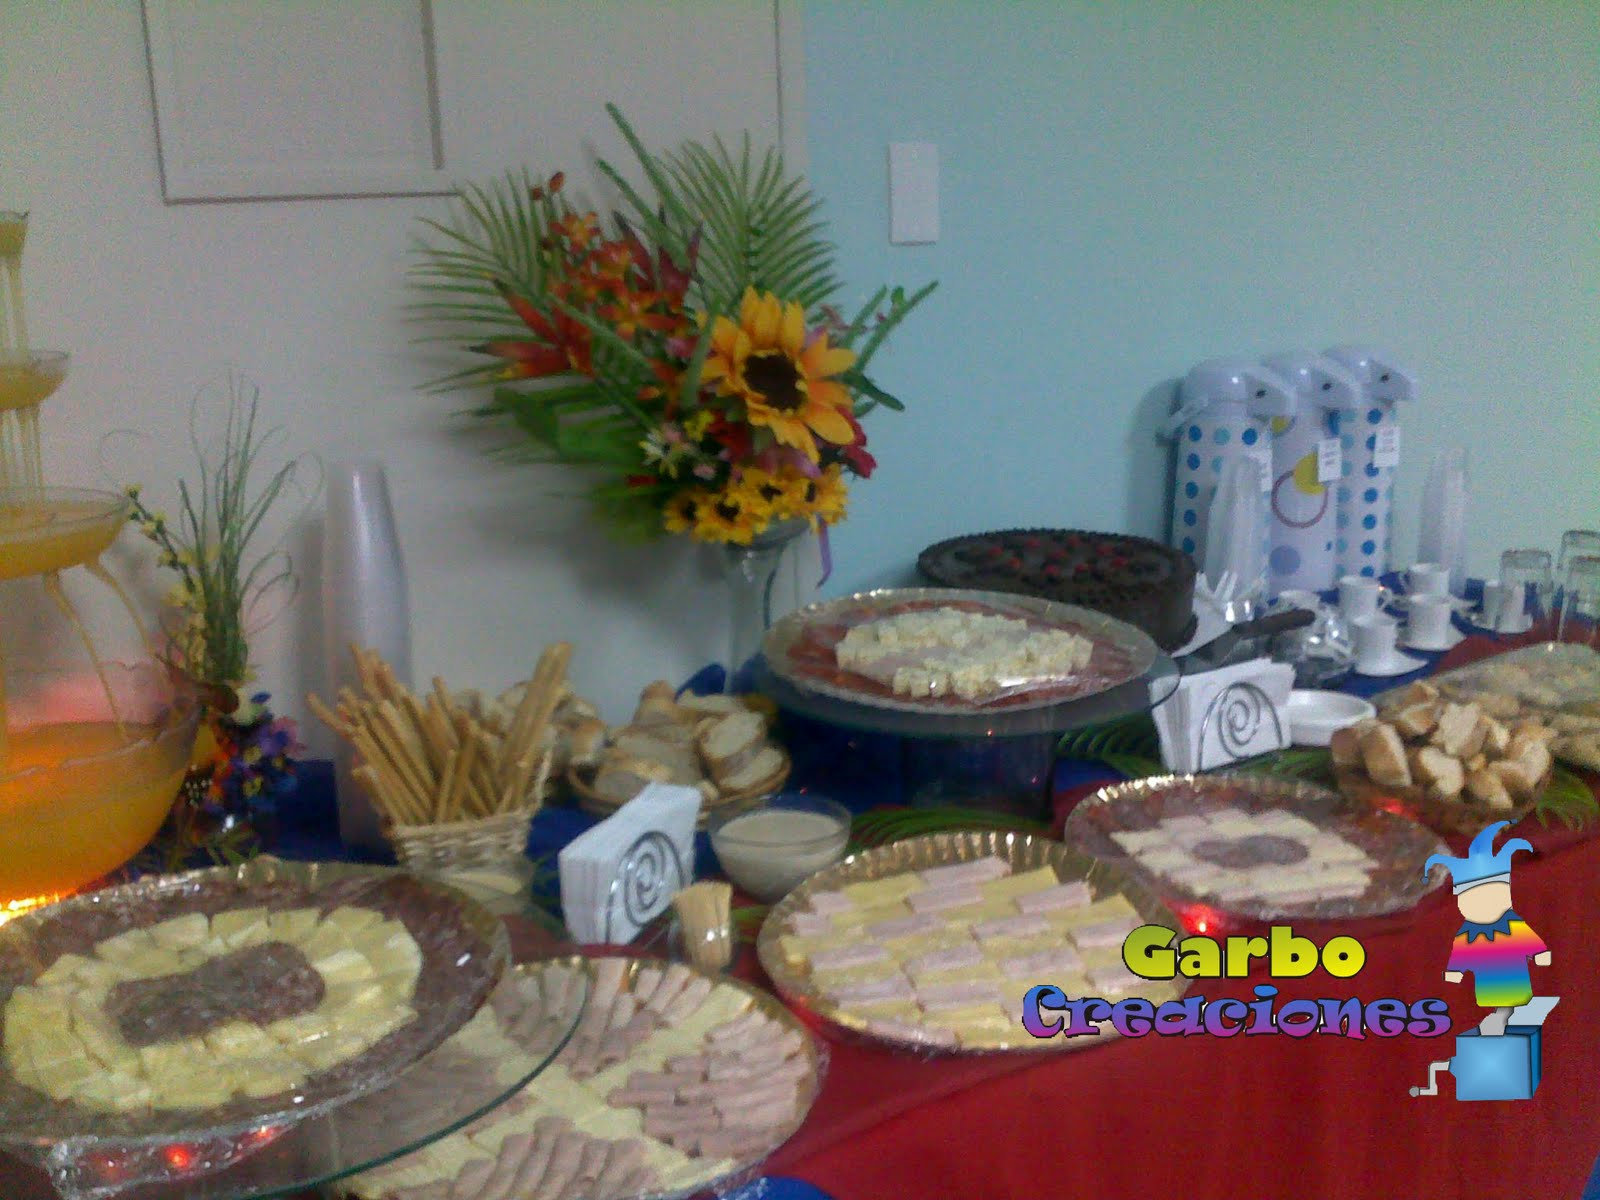 Bandejas Decoracion Salon Garbo Creaciones Mesas De Desayunos Y Coffe Break